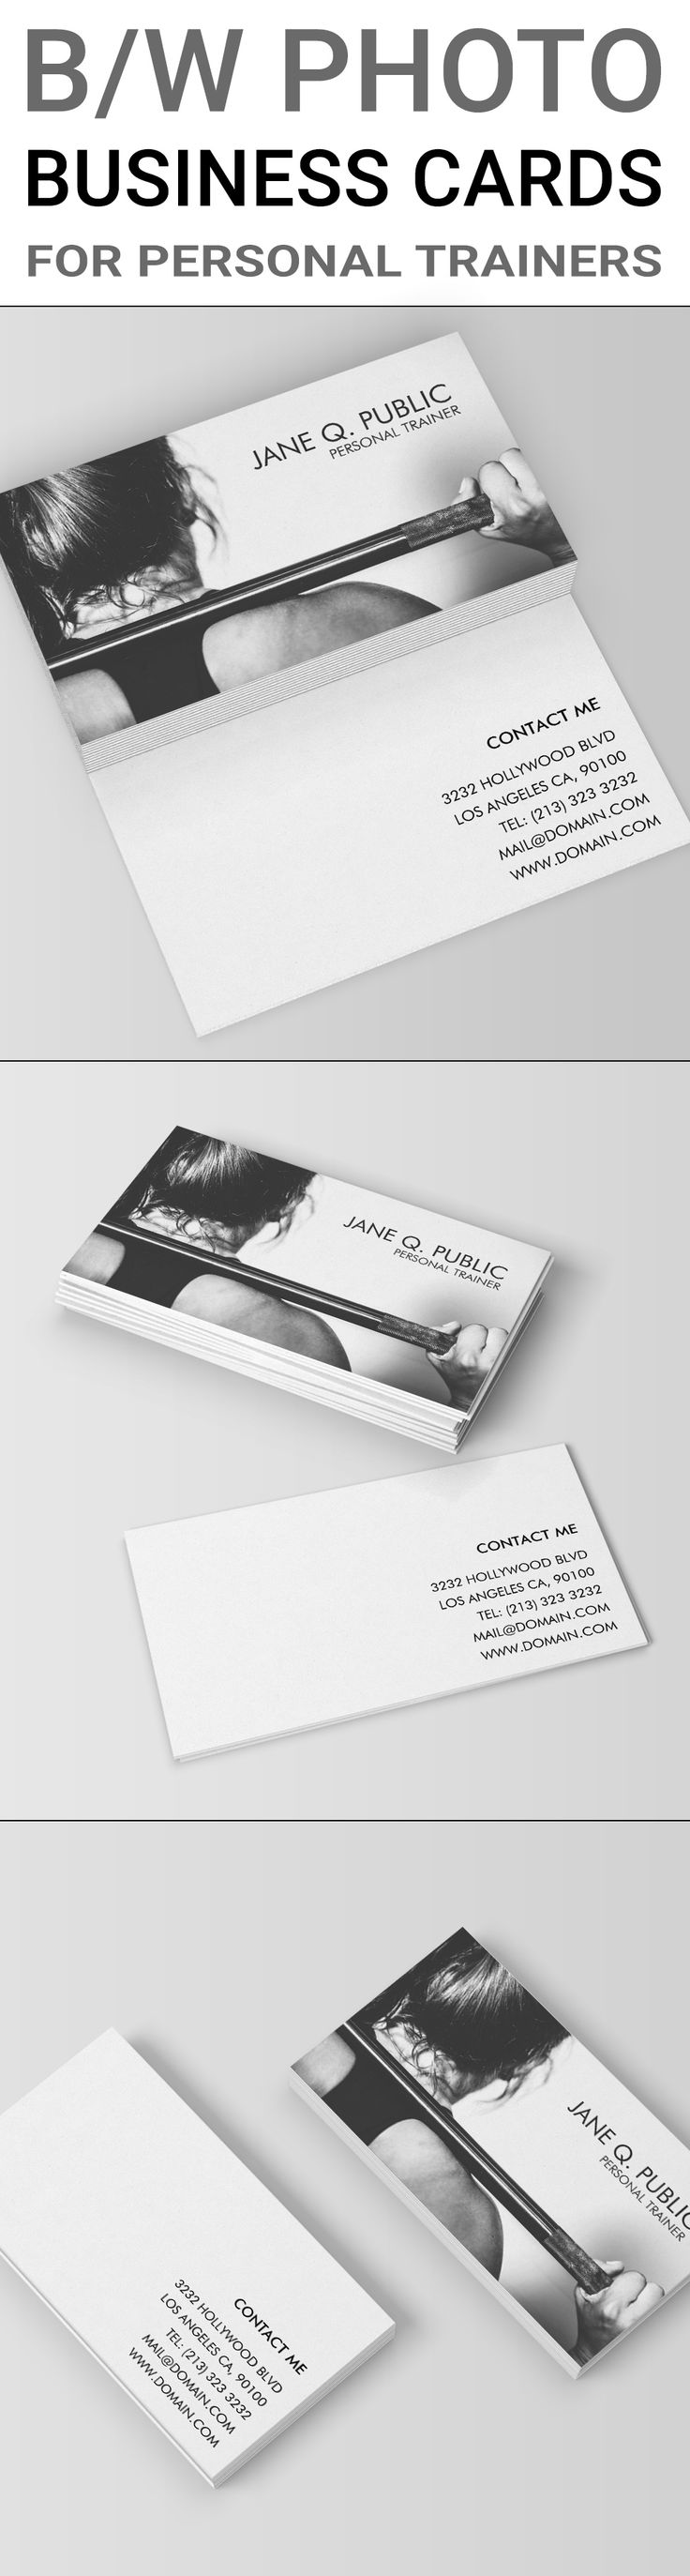 Black and white business cards template for personal trainers, fitness trainers and athletes. The front of the business card template shows a black and white photograph of a woman lifting weights and doing exercise. It also includes your name and job titl